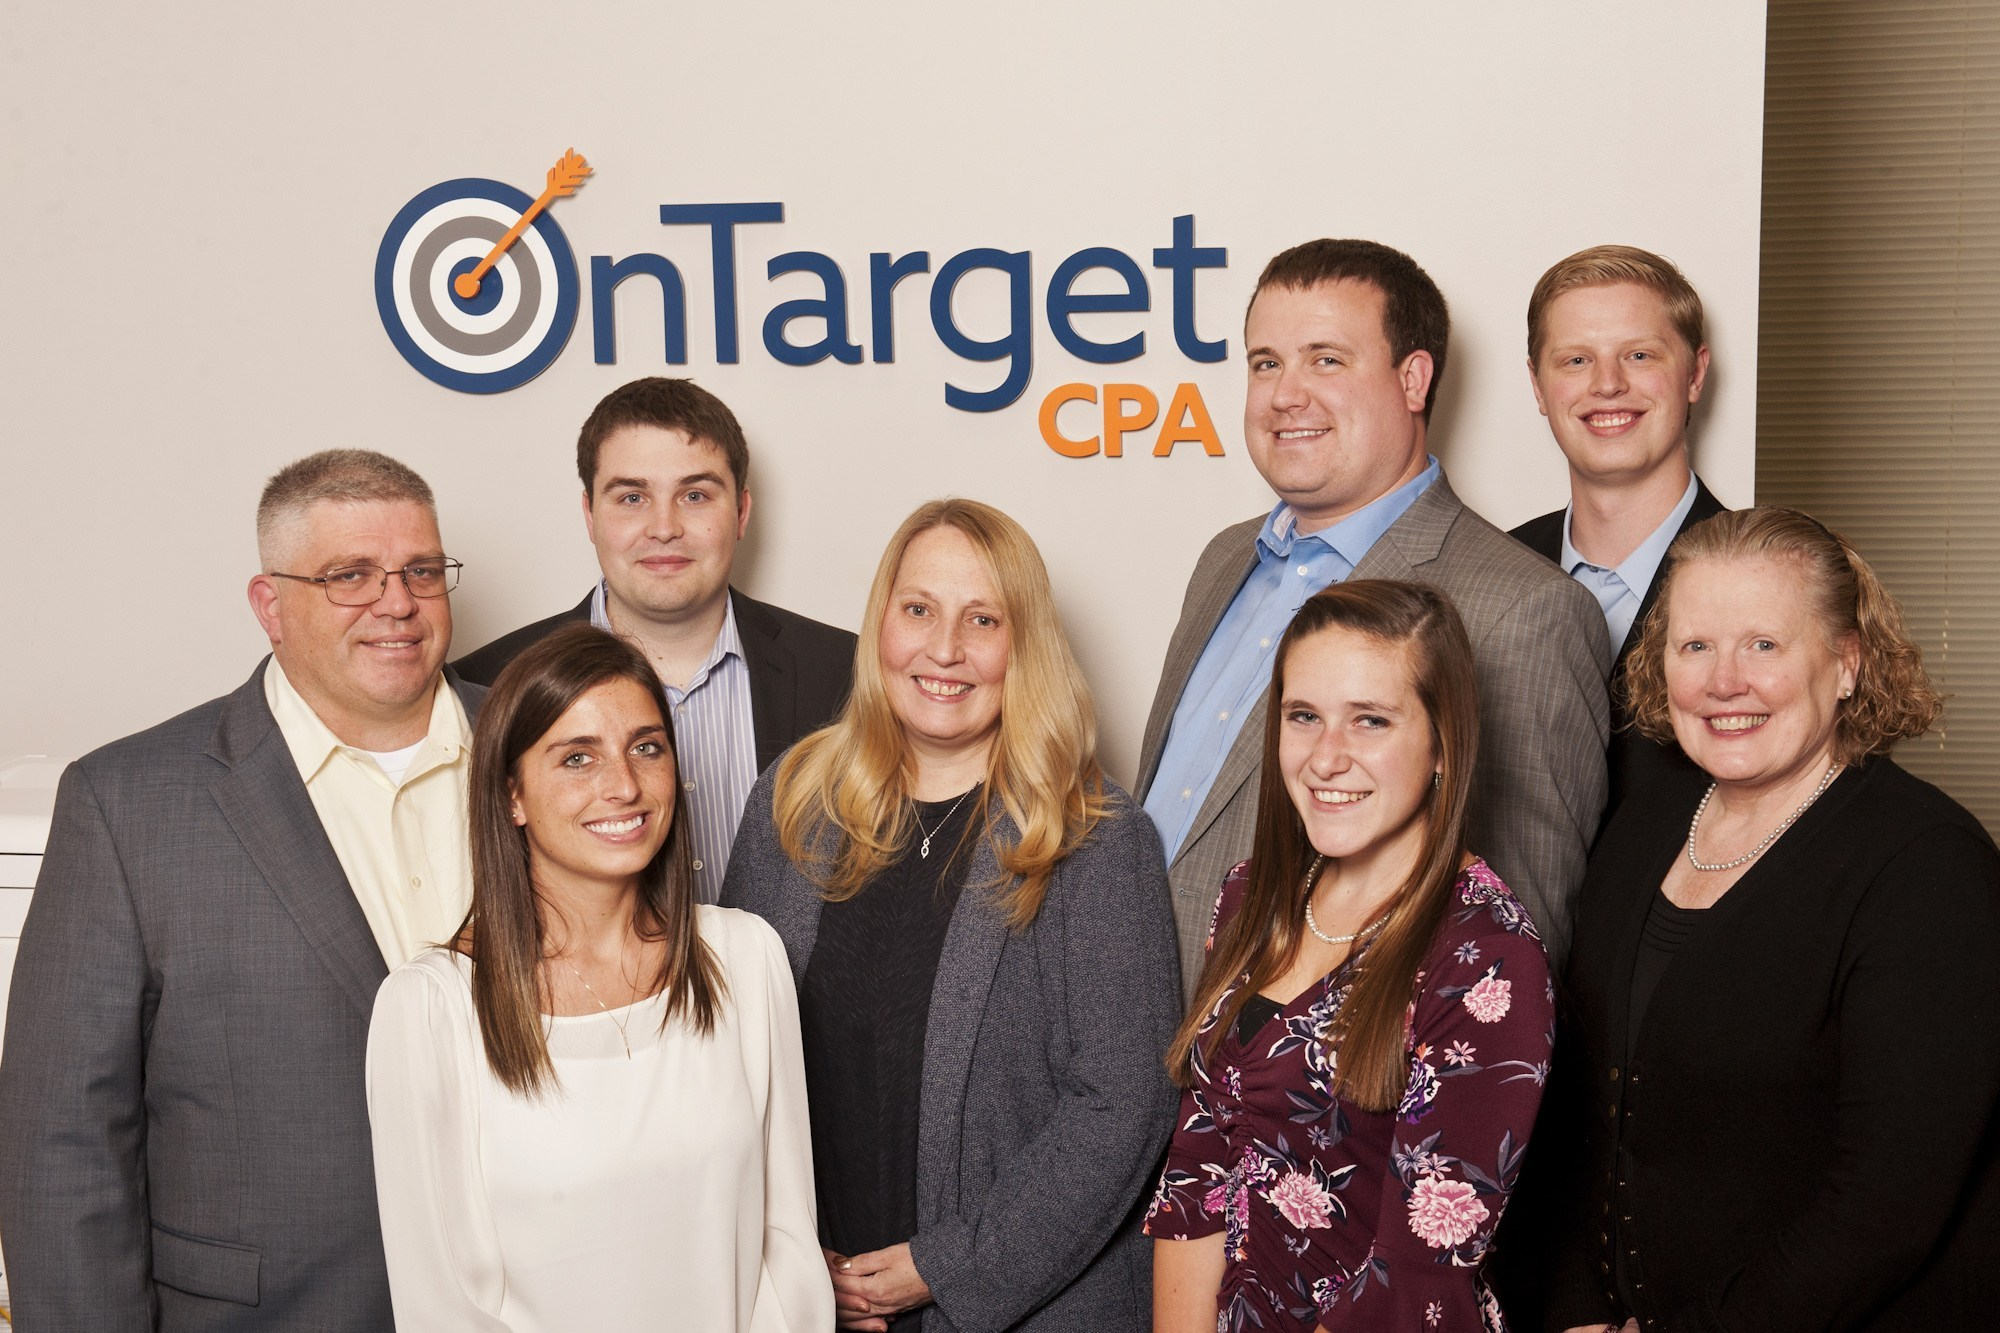 Indiana's Top Rated Local® Accounting Firms & CPAs Award Winner: OnTarget CPA